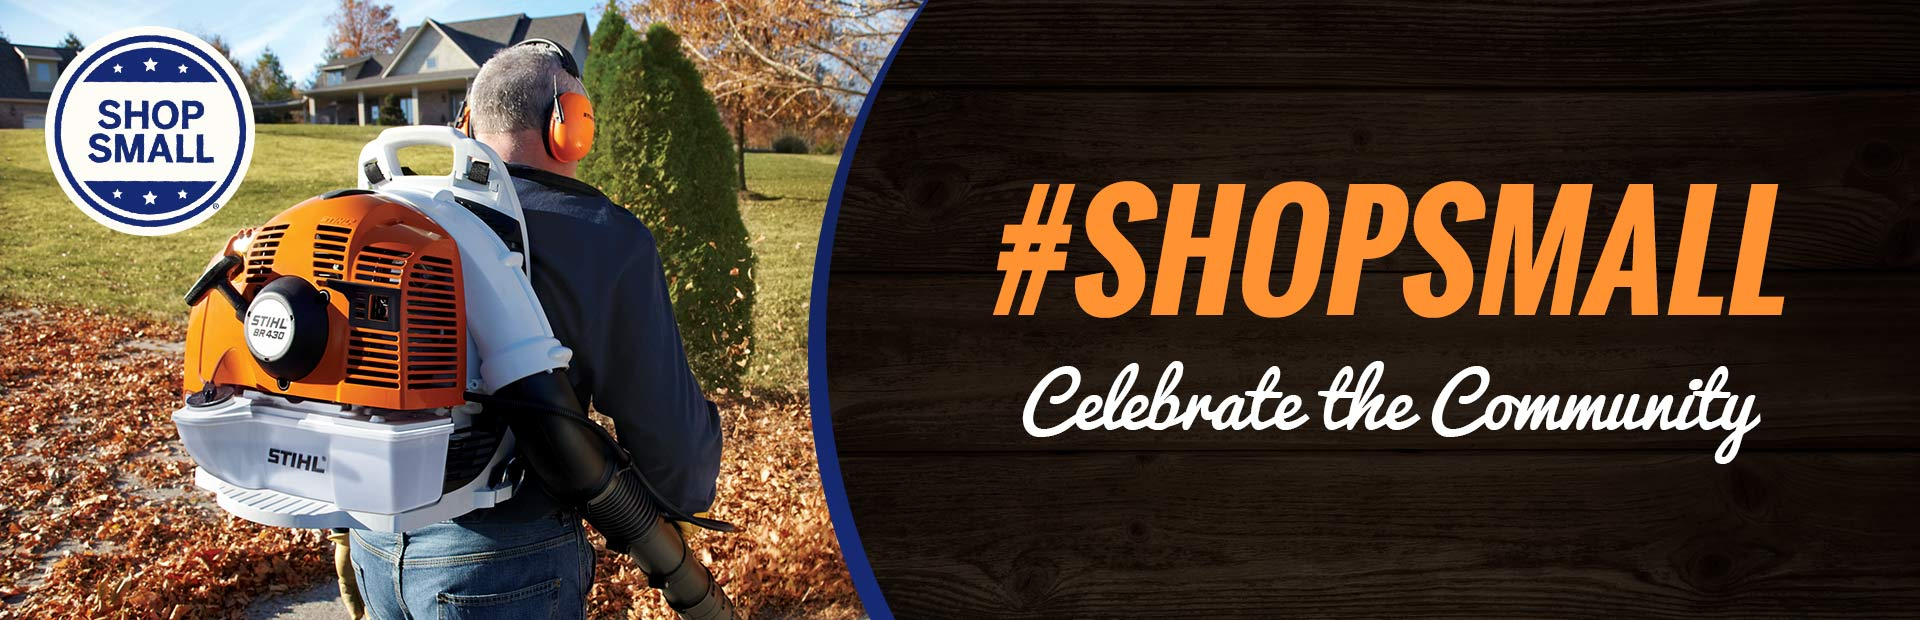 Celebrate the Community: #SHOPSMALL